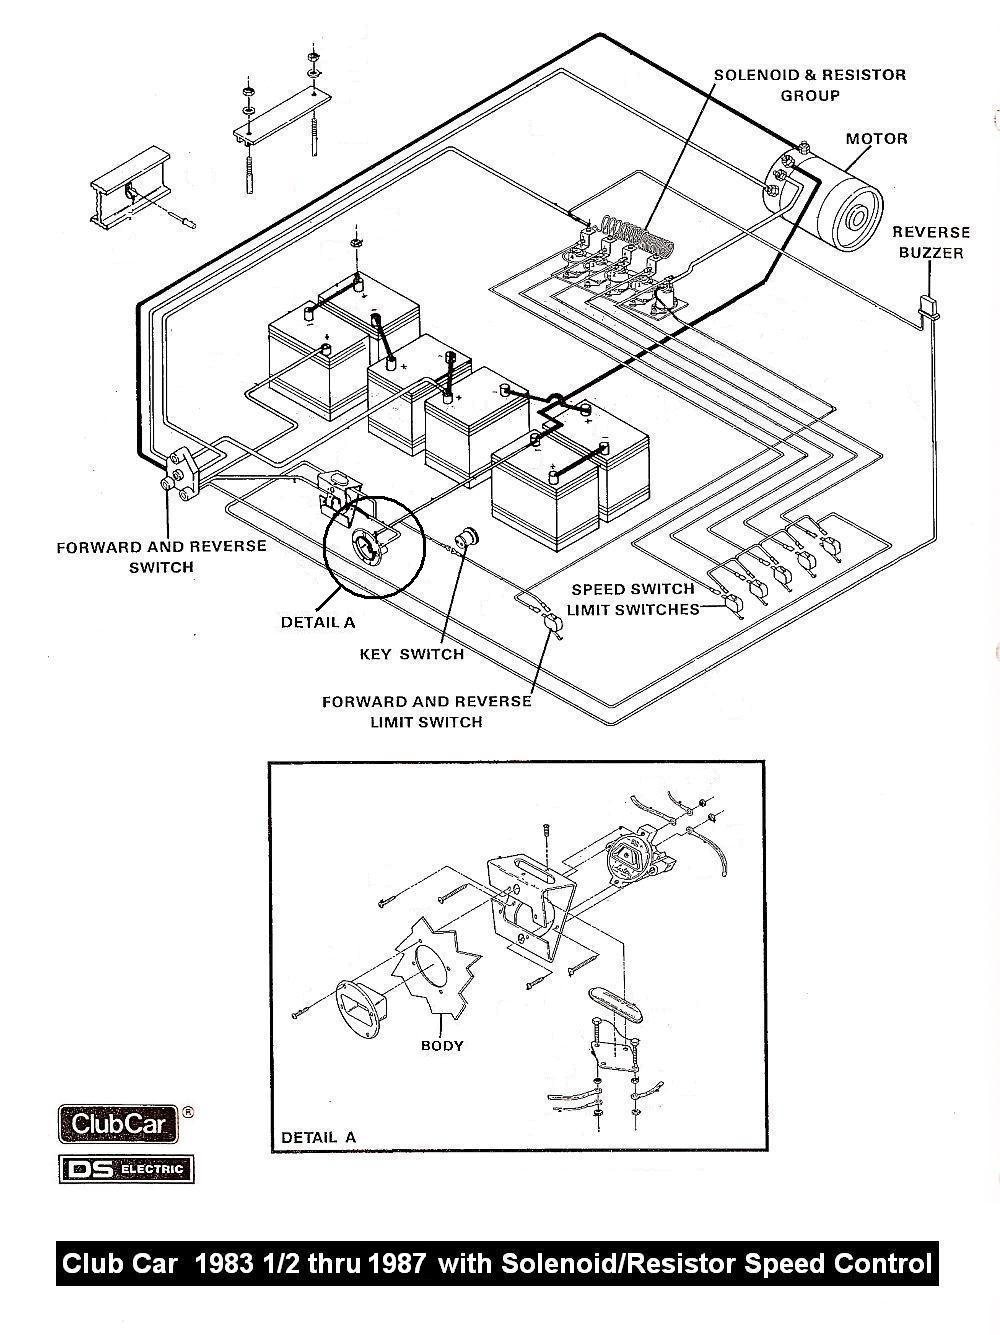 Club Car Electrical Schematic | Wiring Diagram Vehicle Wiring Schematic on